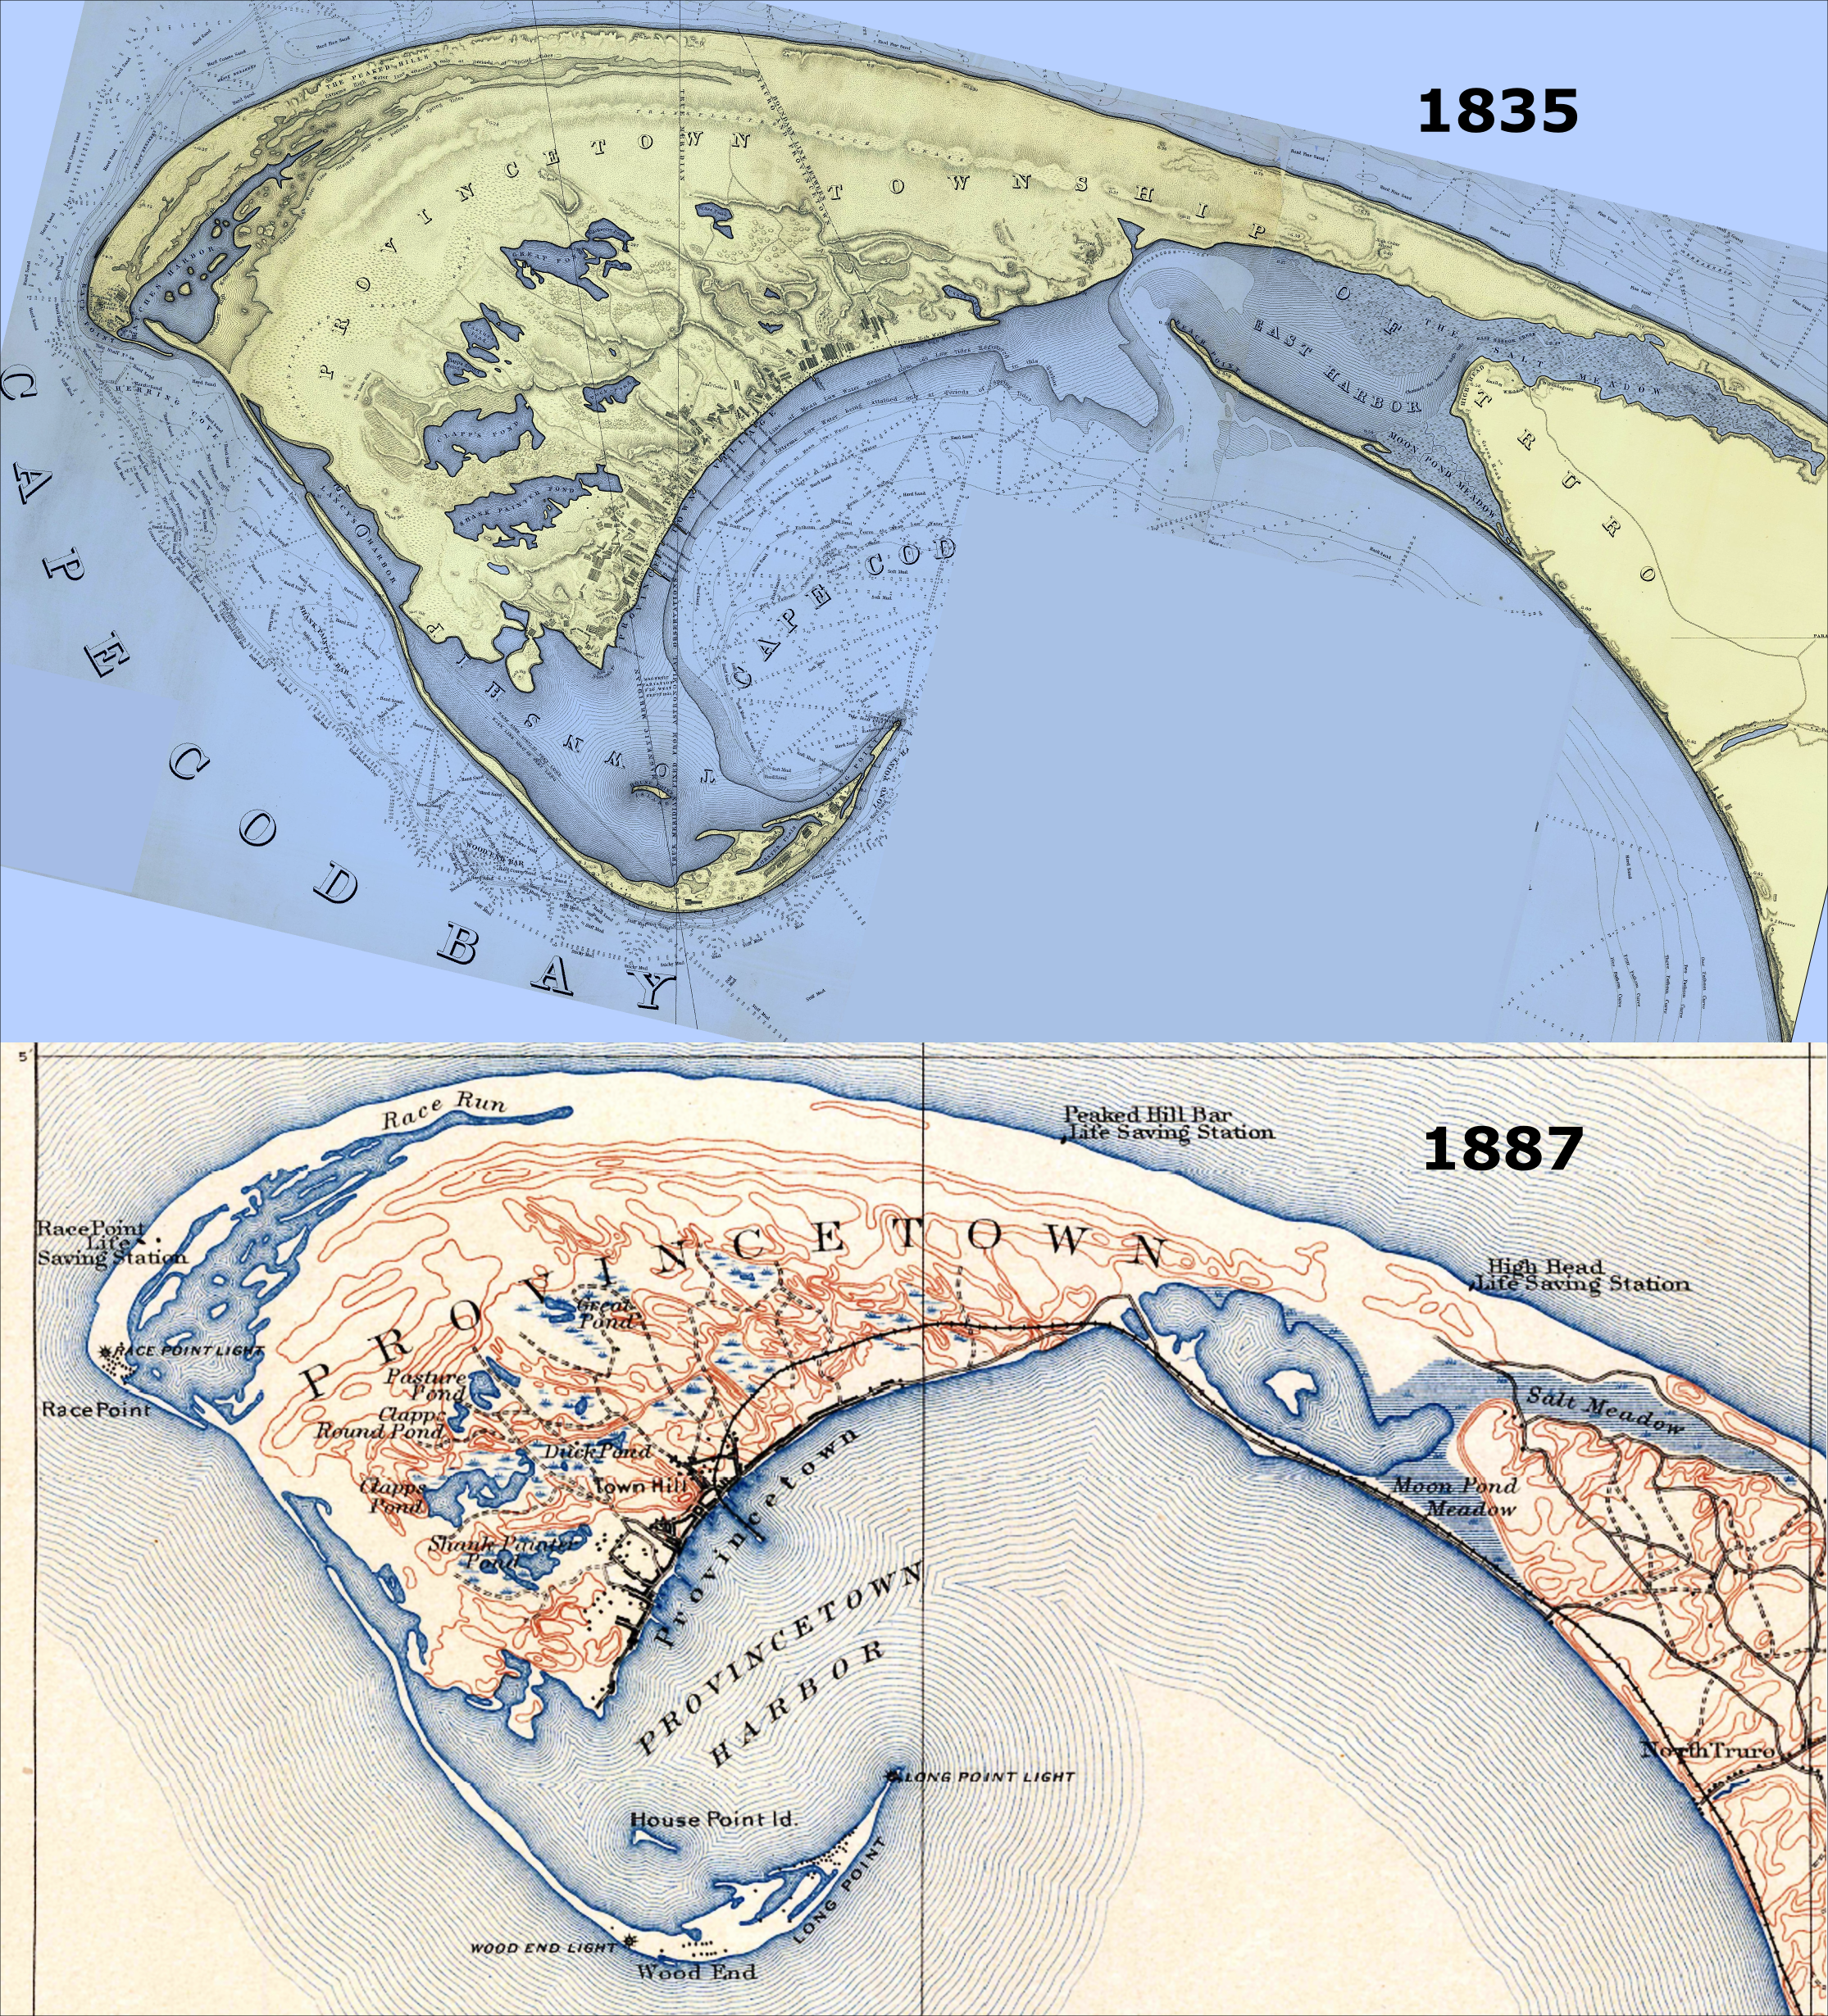 FileProvincetown Before After Railroadpng Wikimedia Commons - 1889 us railroad map